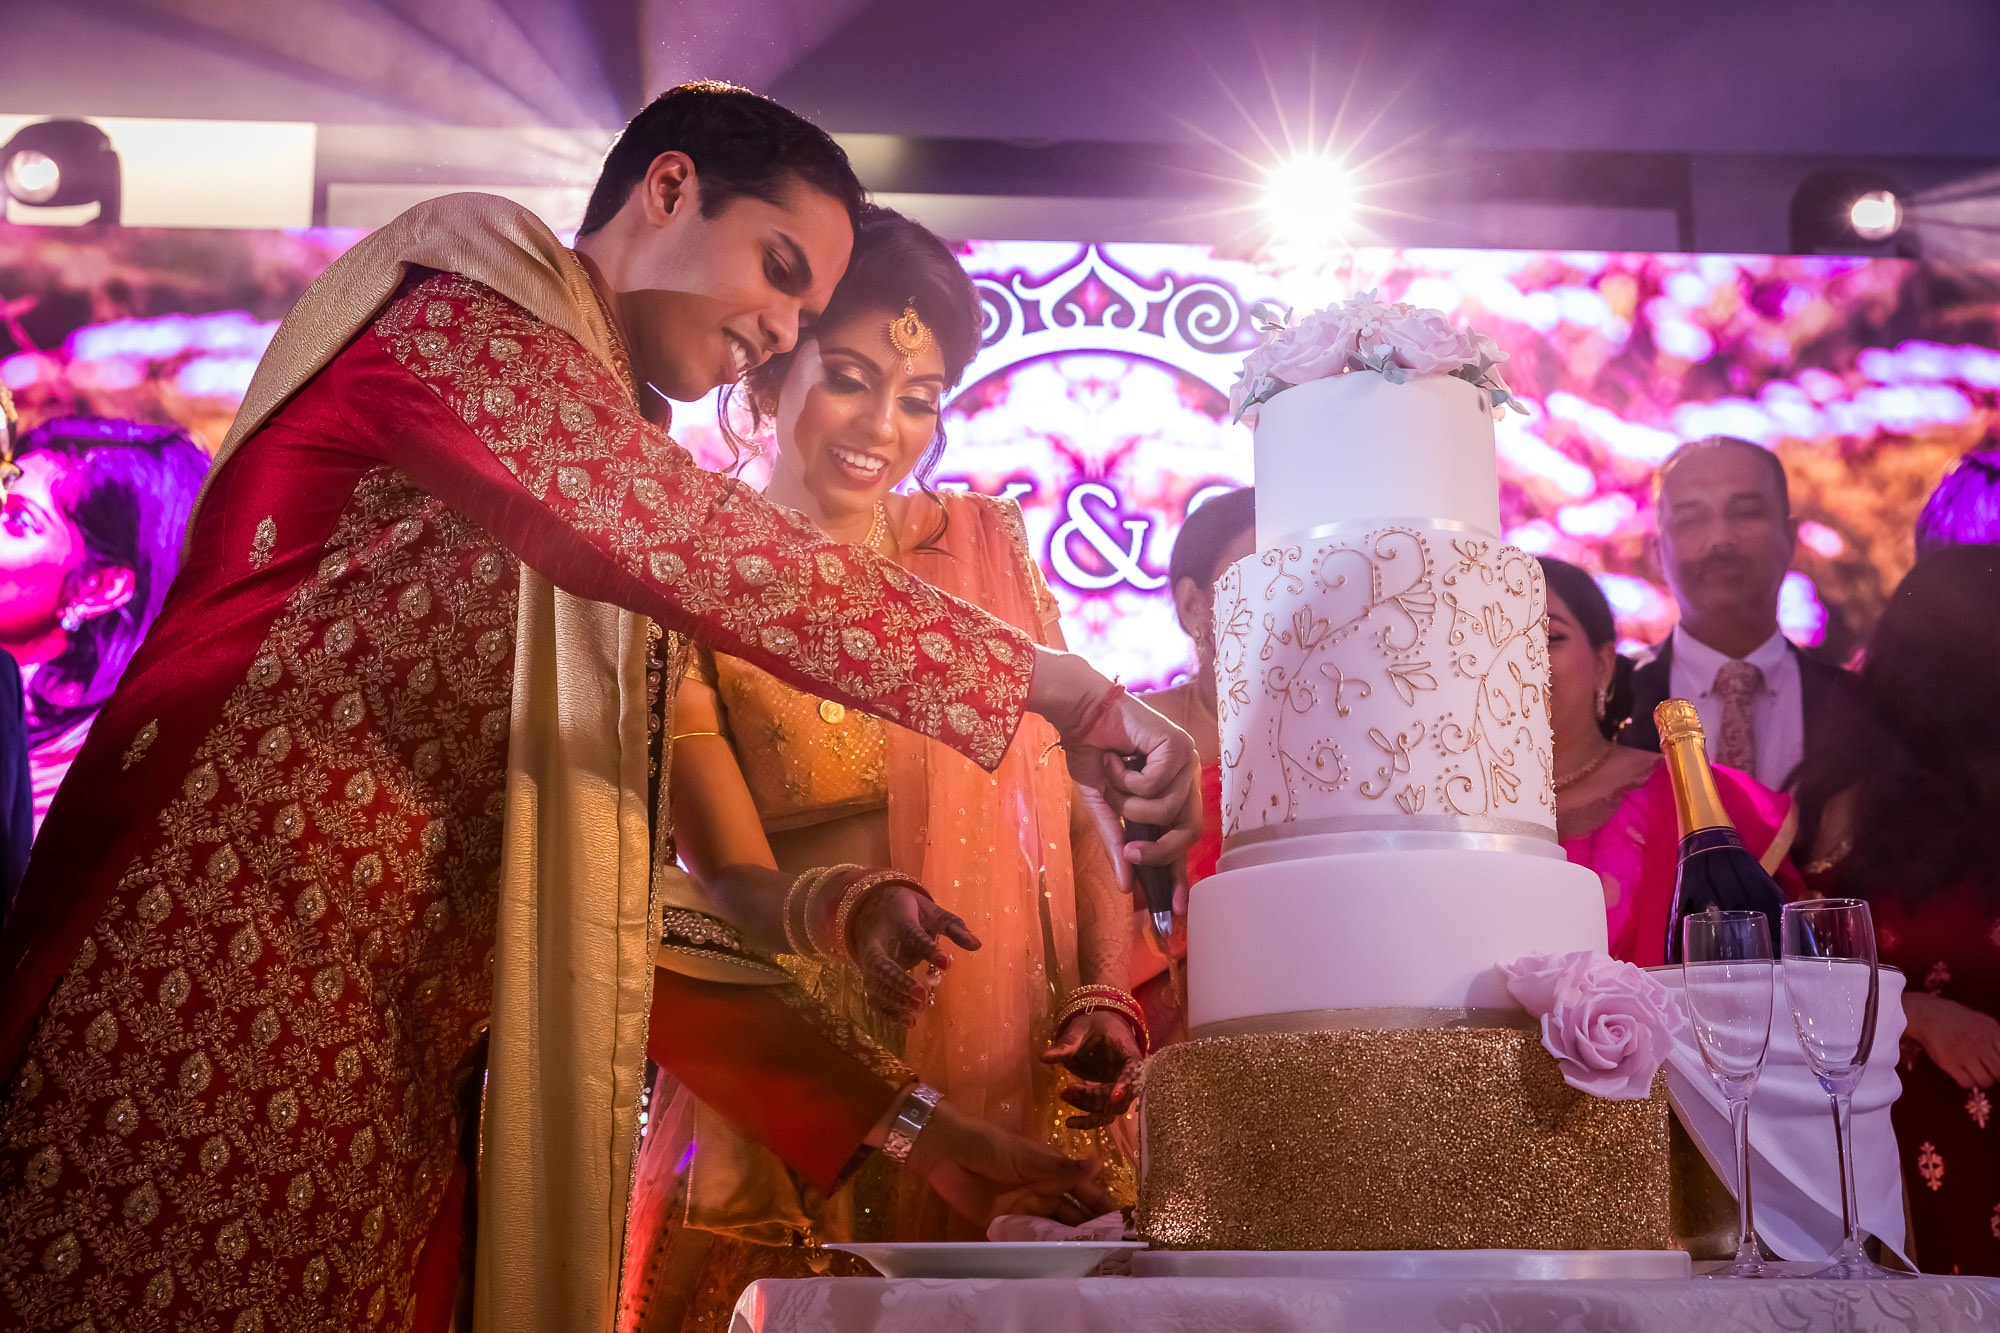 asian-wedding-hindu-tamil-photographer-heythorpe-oxford-0102.jpg